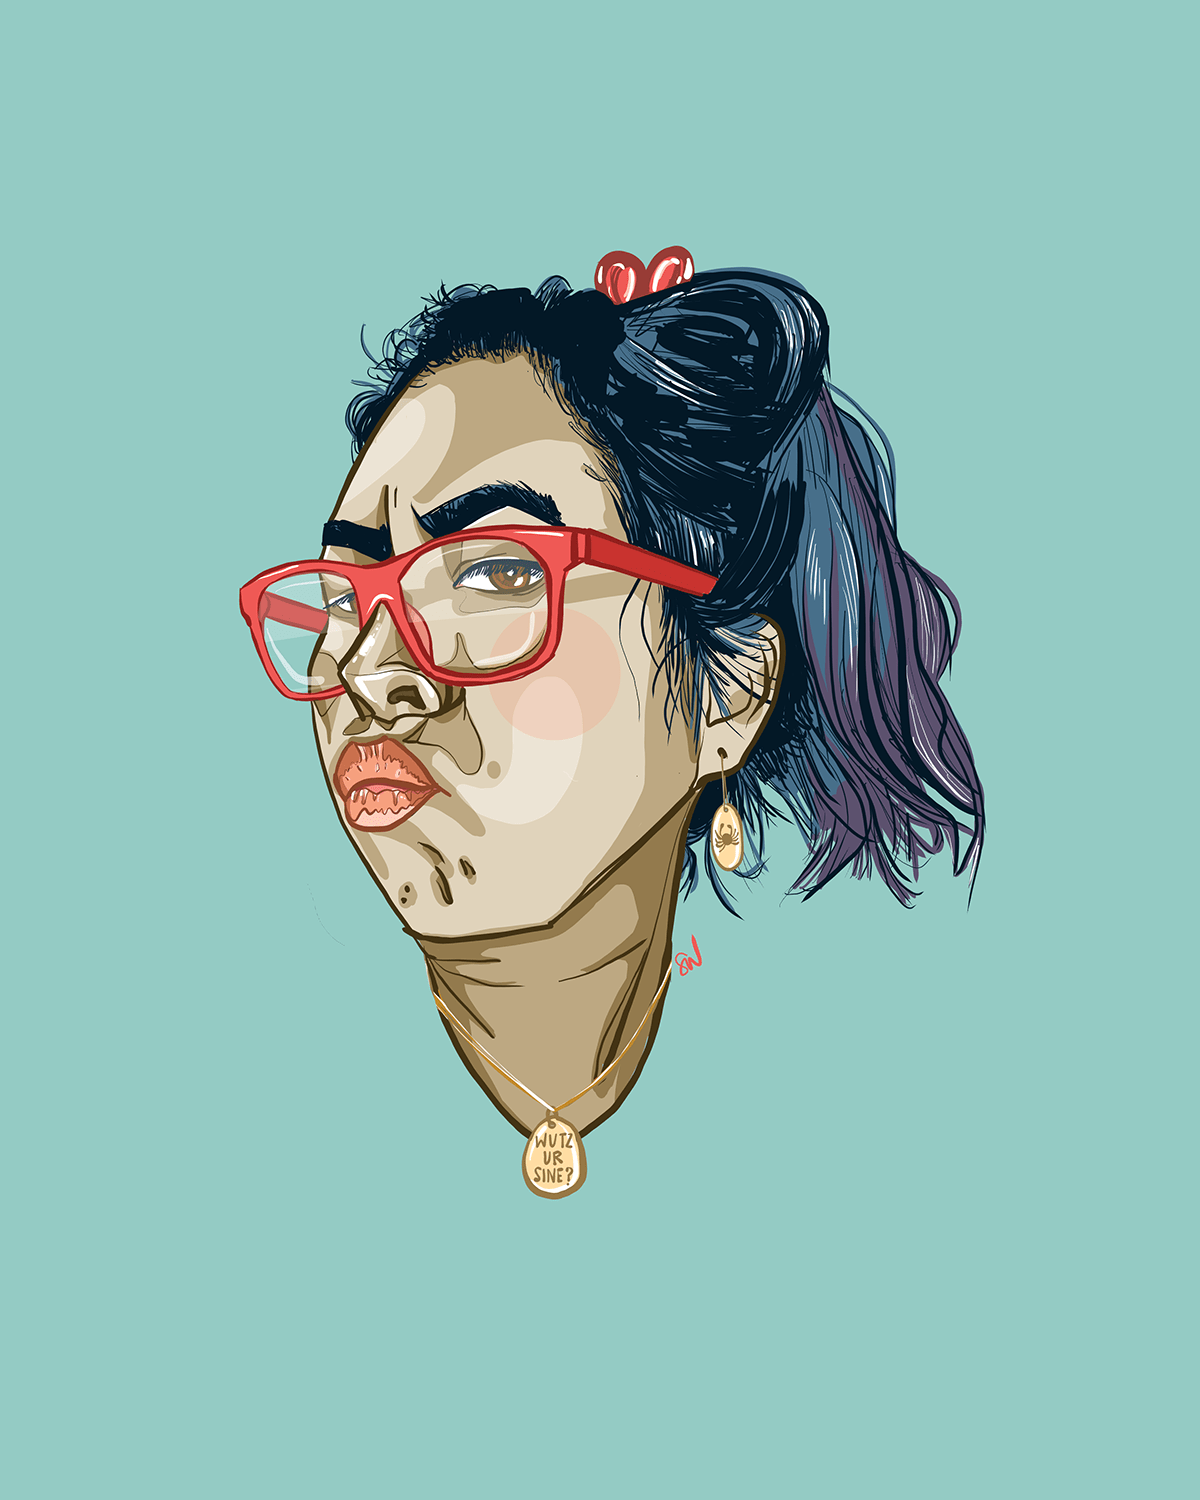 Woman in red glasses with a whatever/who cares/ef u expression